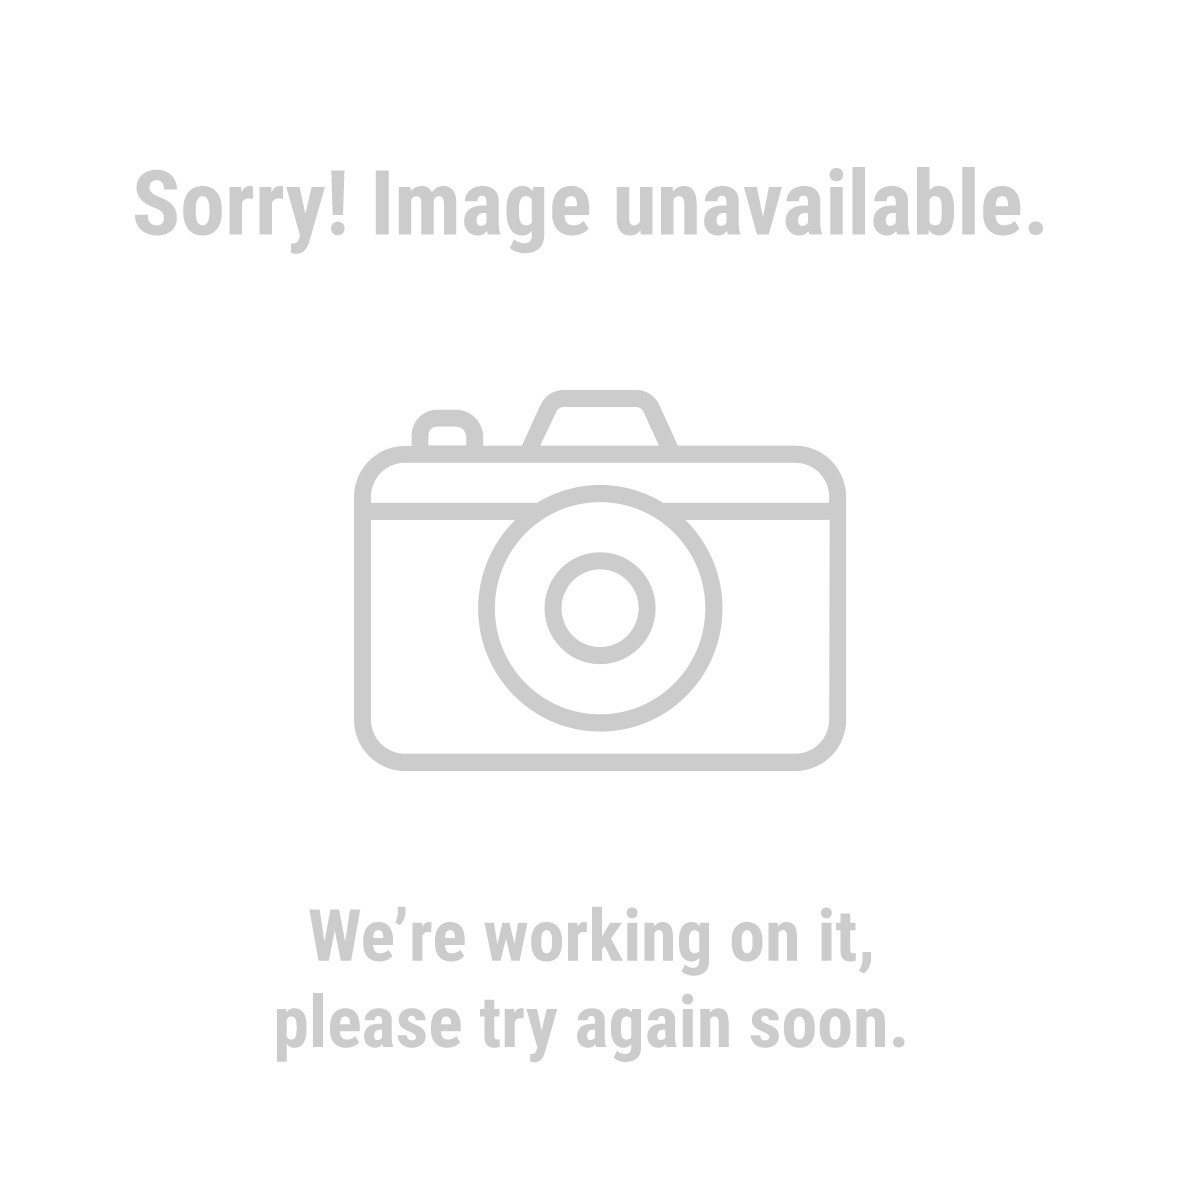 Pittsburgh Automotive 62770 2000 lb. Electric Hoist with Remote Control